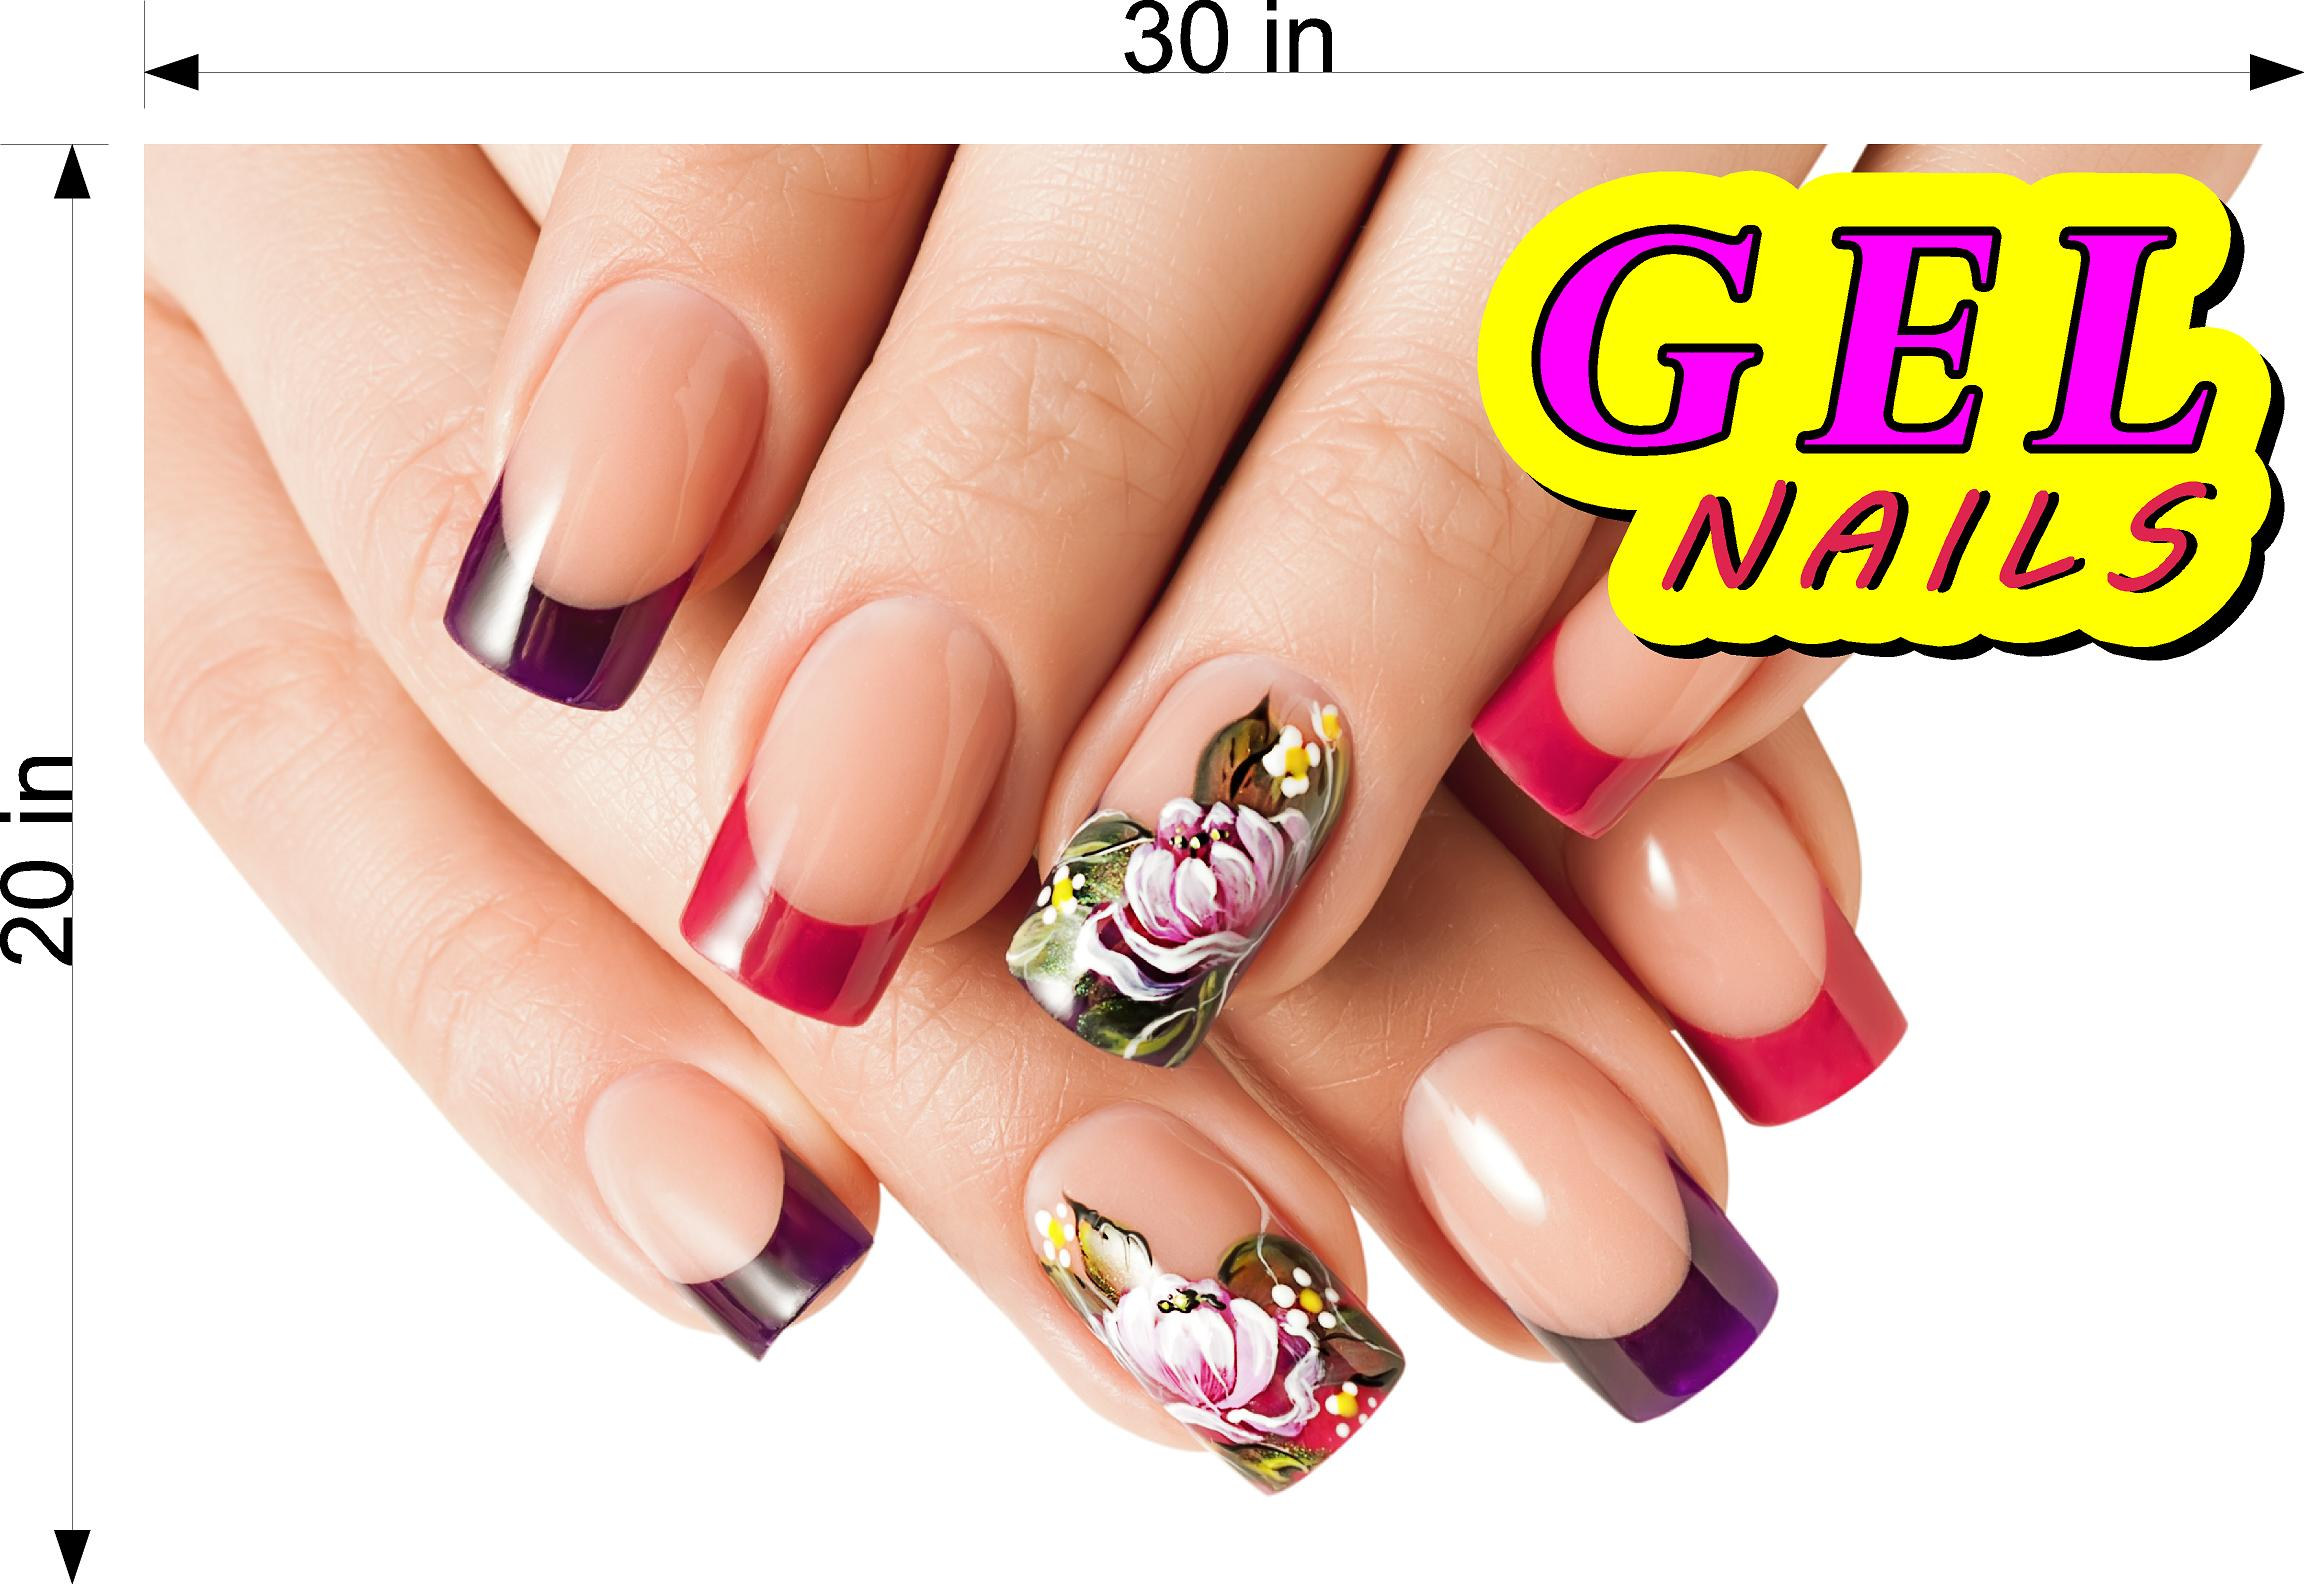 Gel 08 Photo-Realistic Paper Poster Premium Matte Interior Inside Sign Nail Salon Wall Window Non-Laminated Horizontal